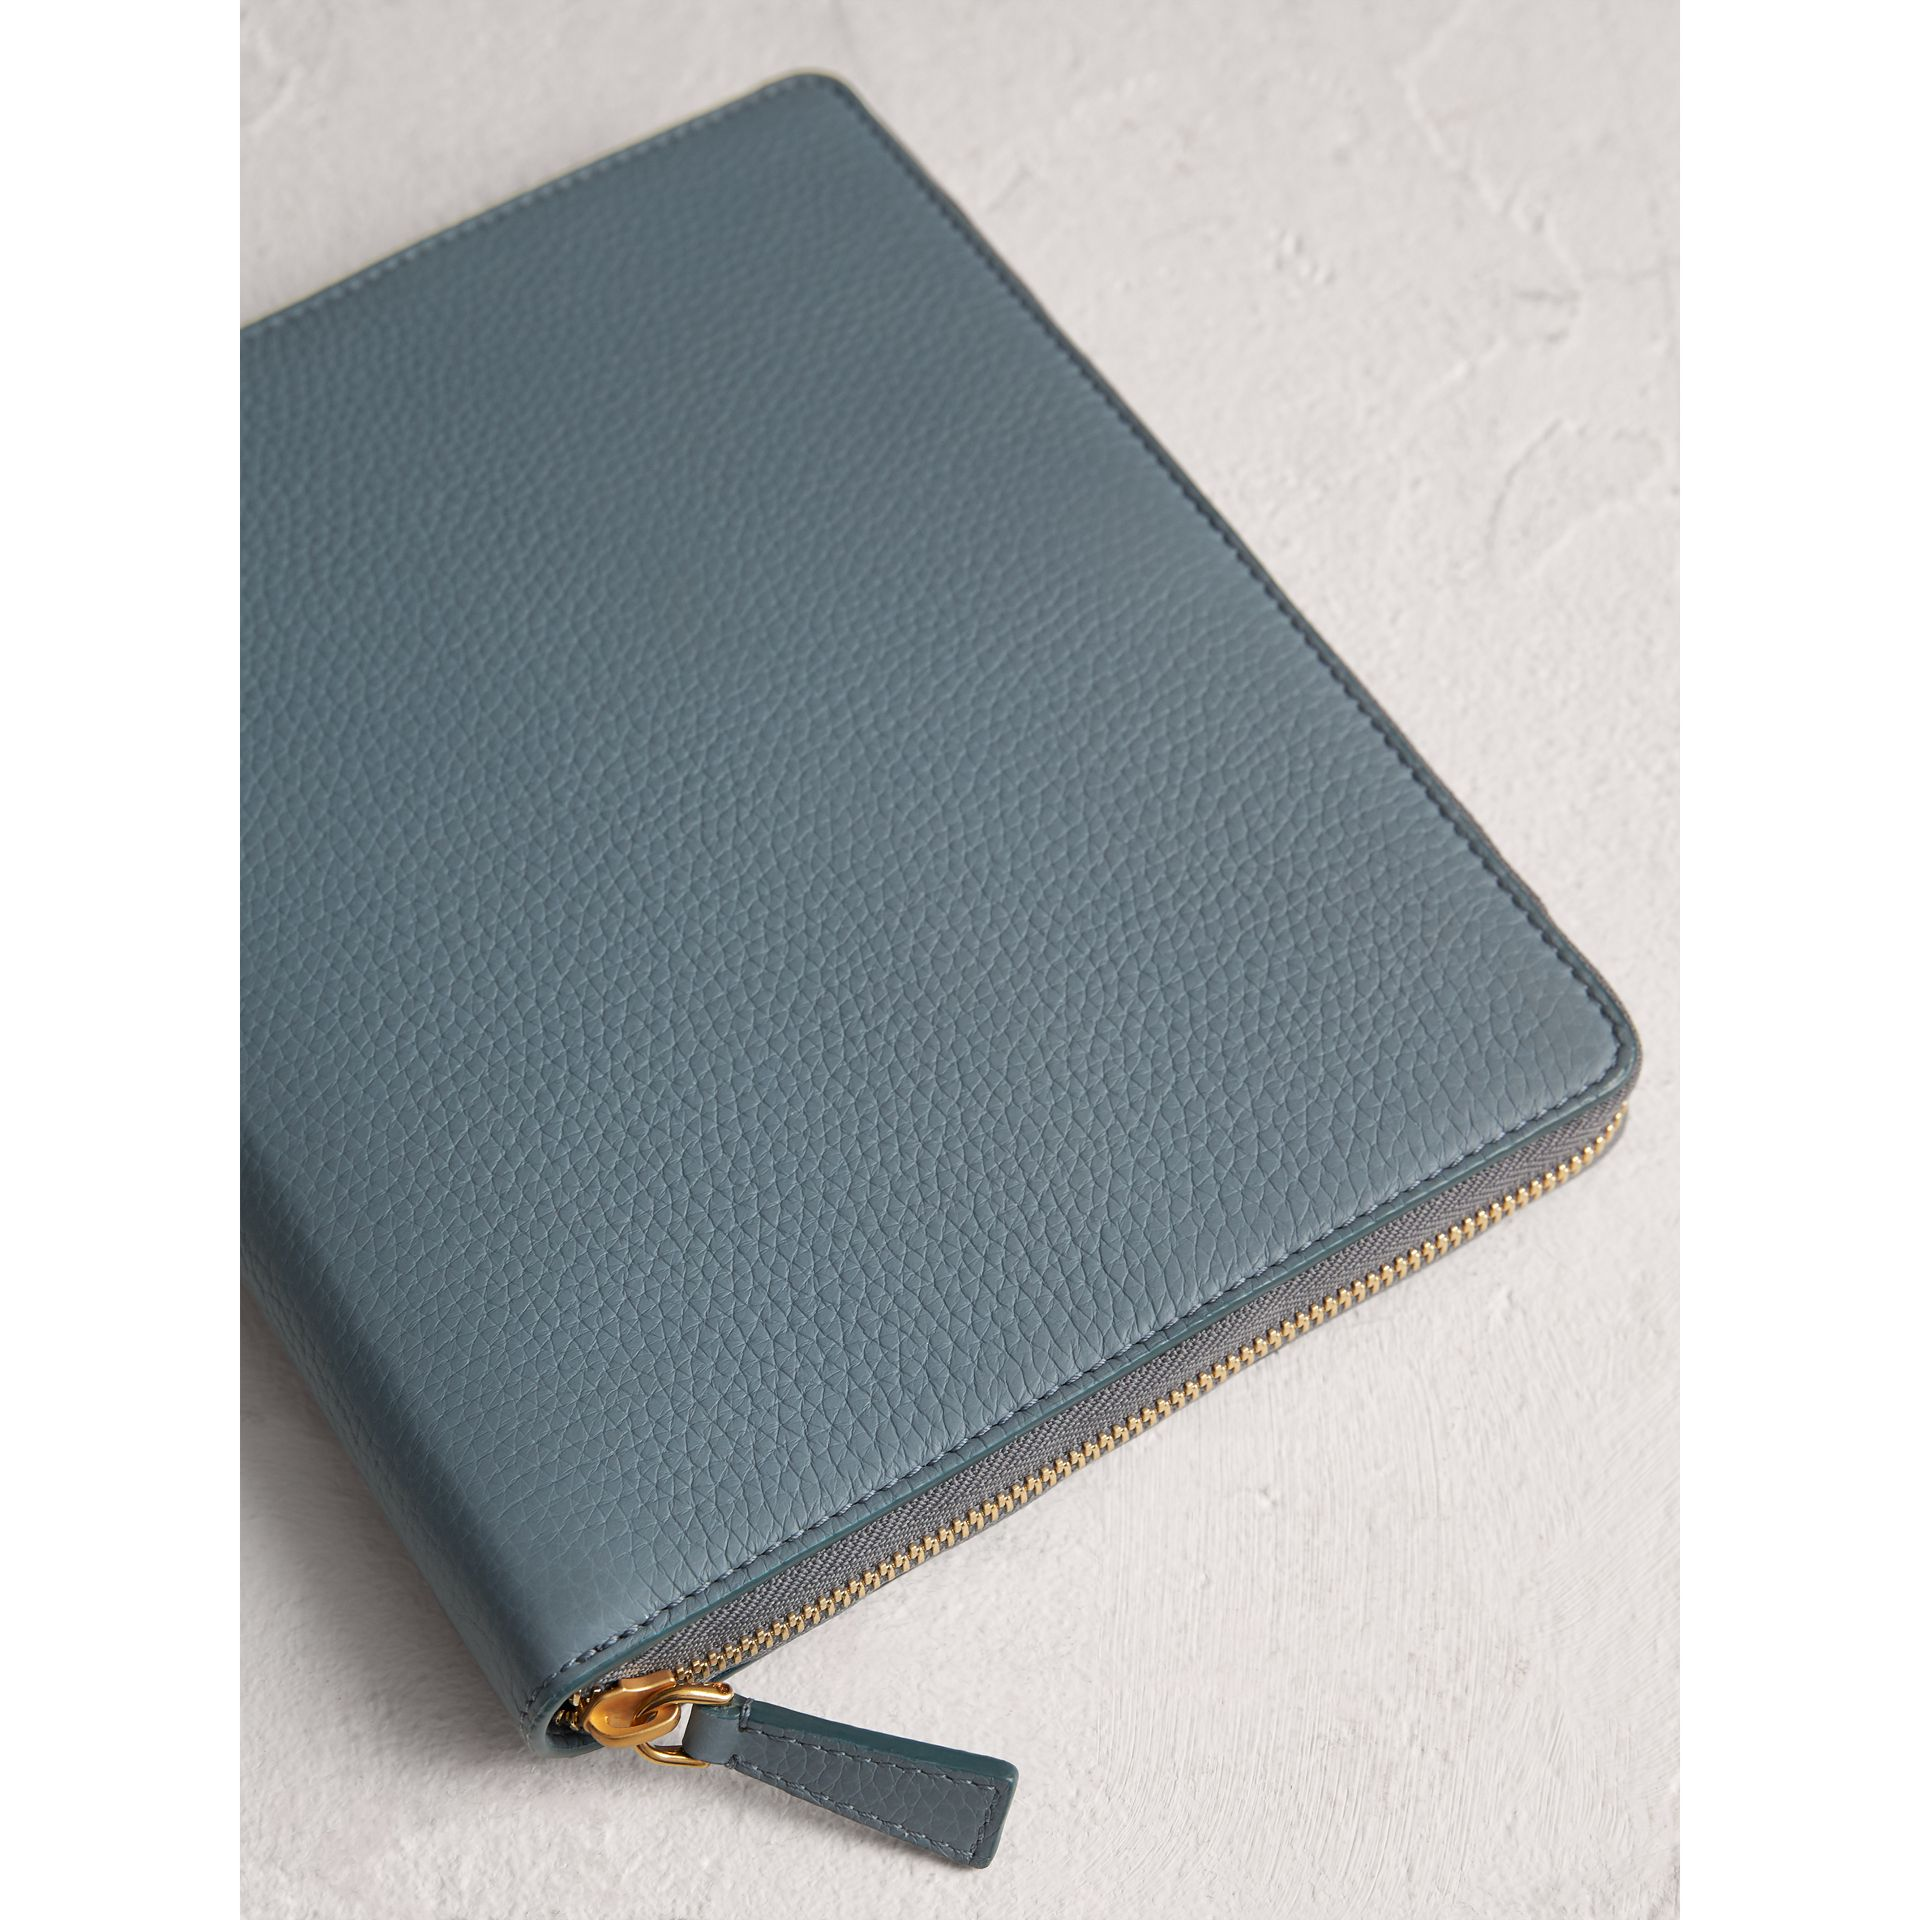 Embossed Leather Ziparound A5 Notebook Case in Dusty Teal Blue | Burberry - gallery image 2